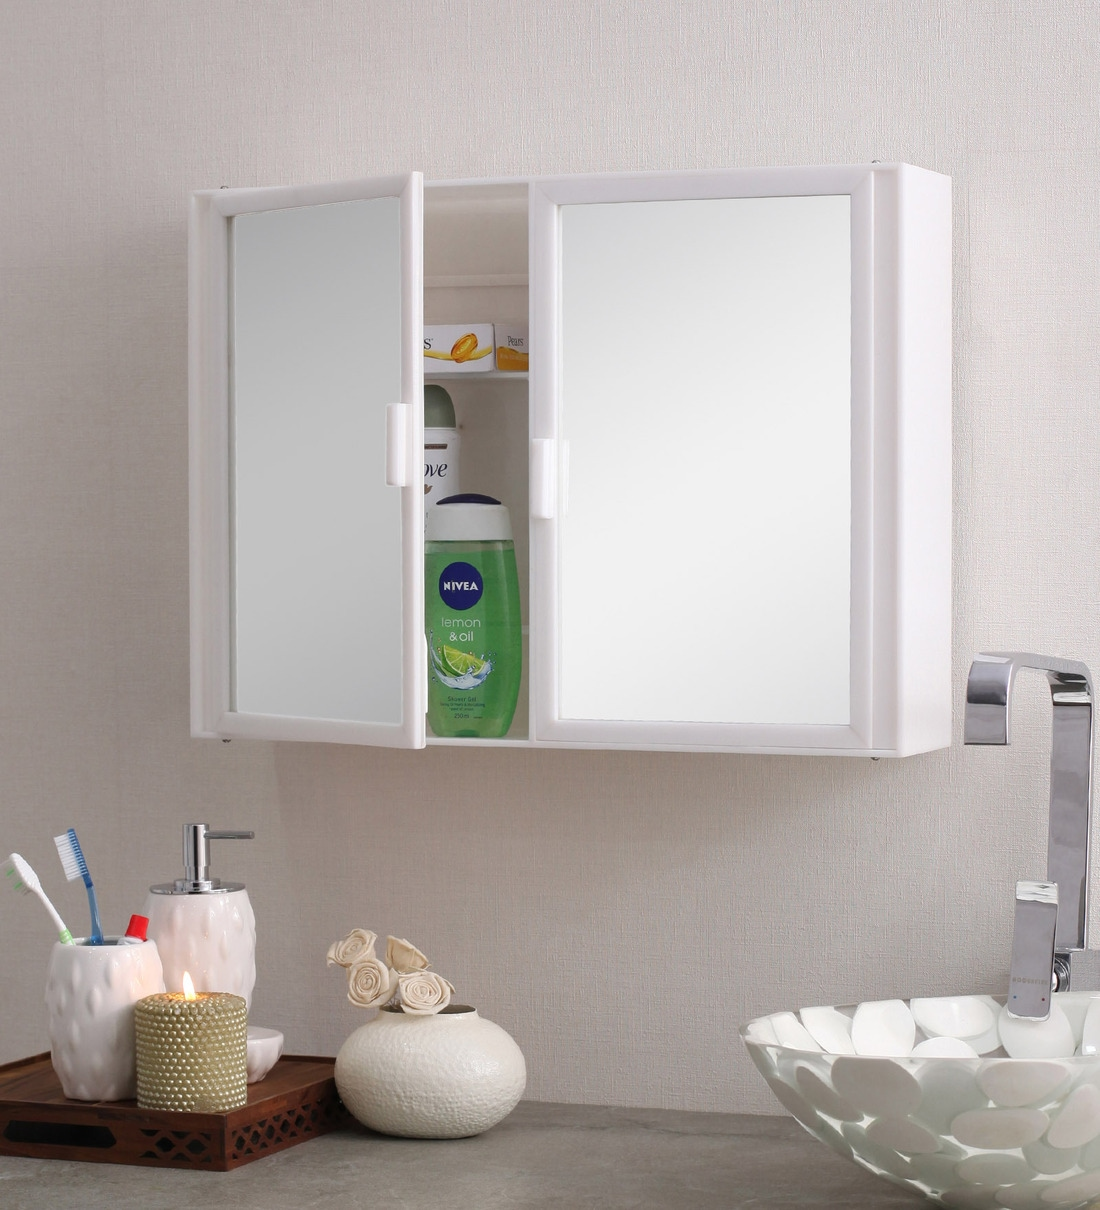 Picture of: Buy Acrylic White 8 Compartment Bathroom Cabinet L 22 W 4 H 16 Inches By Navrang Online Plastic Cabinets Bathroom Cabinets Discontinued Pepperfry Product